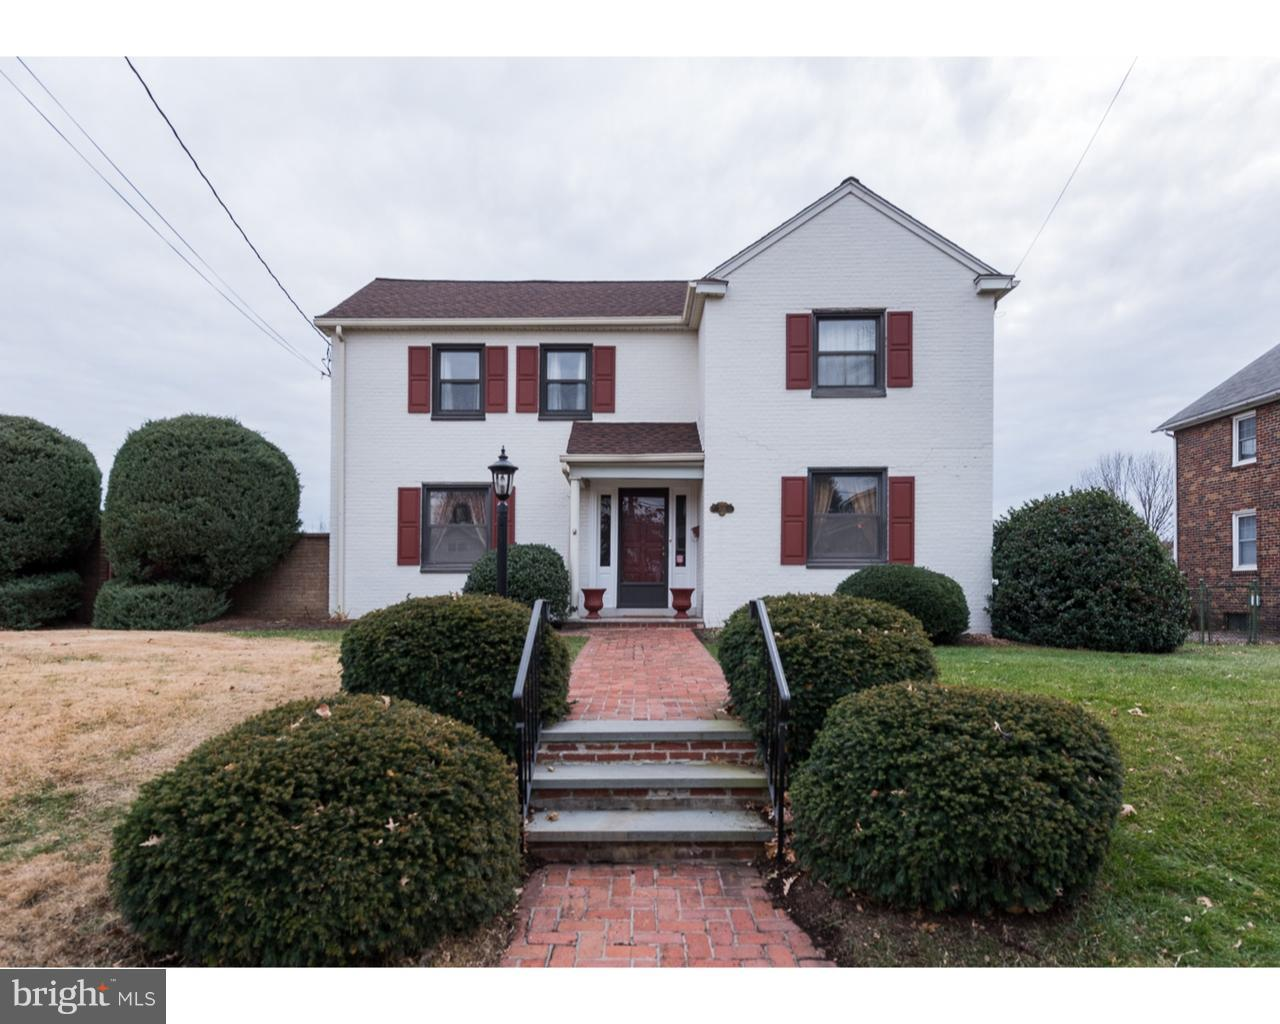 This beautiful brick colonial has 4,300 square feet of elegant living space, over-the-top outdoor amenities, and a lovely residential Wilmington location.  A brick walkway leads to this center-hall Colonial.  Enter to the elegant foyer and main-floor living space with newly refinished hardwood floors throughout.  A picturesque staircase greets you and on one side you'll find the formal living room with bay window, wood-burning fireplace, and custom built-ins.  Across the hall is the formal dining room and spacious kitchen featuring granite countertops and stainless-steel appliances.  The cozy family room has custom built-ins and French doors leading to the 4-season sunroom with a wall of windows overlooking the outdoor entertaining area.  Upstairs, you'll find 3 large bedrooms with beautiful natural light, all with hardwood floors, including the master with en-suite bathroom, and you'll also find an additional bathroom and cedar closet. The lower level of this home includes a fully finished living space including a rec room/family room, a 4th bedroom, a powder room, a large laundry room, and a large cedar closet that could easily be converted to a sauna.  This space has its own outdoor entrance and could be used as an in-law suite or a separate apartment, if needed.  You will be amazed at the 2-tiered outdoor entertaining space on this property.  You'll enjoy a large patio perfect for grilling, outdoor dining, and entertaining.  Then, step down to the lower level with in-ground heated pool, granite wet bar, refrigerator, outdoor shower and bathroom.  All this, surrounded by an 8-foot brick fence for the utmost privacy.  This property includes an oversized attached garage and additional parking.  Many upgrades have been made, including a new roof in 2016, new electric panel, water heater and water pump in 2015, new air conditioning unit and handler in 2016, refinished hardwood floors in 2017, and brand new carpet.   Seller is a licensed real estate agent.  Be sure to